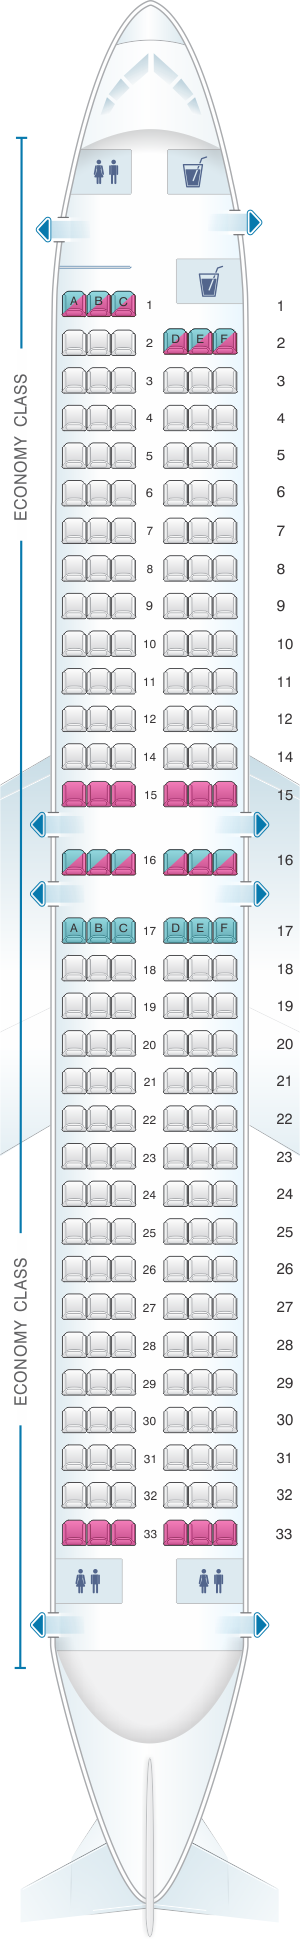 Seat map for Corendon Airlines Boeing B737 800